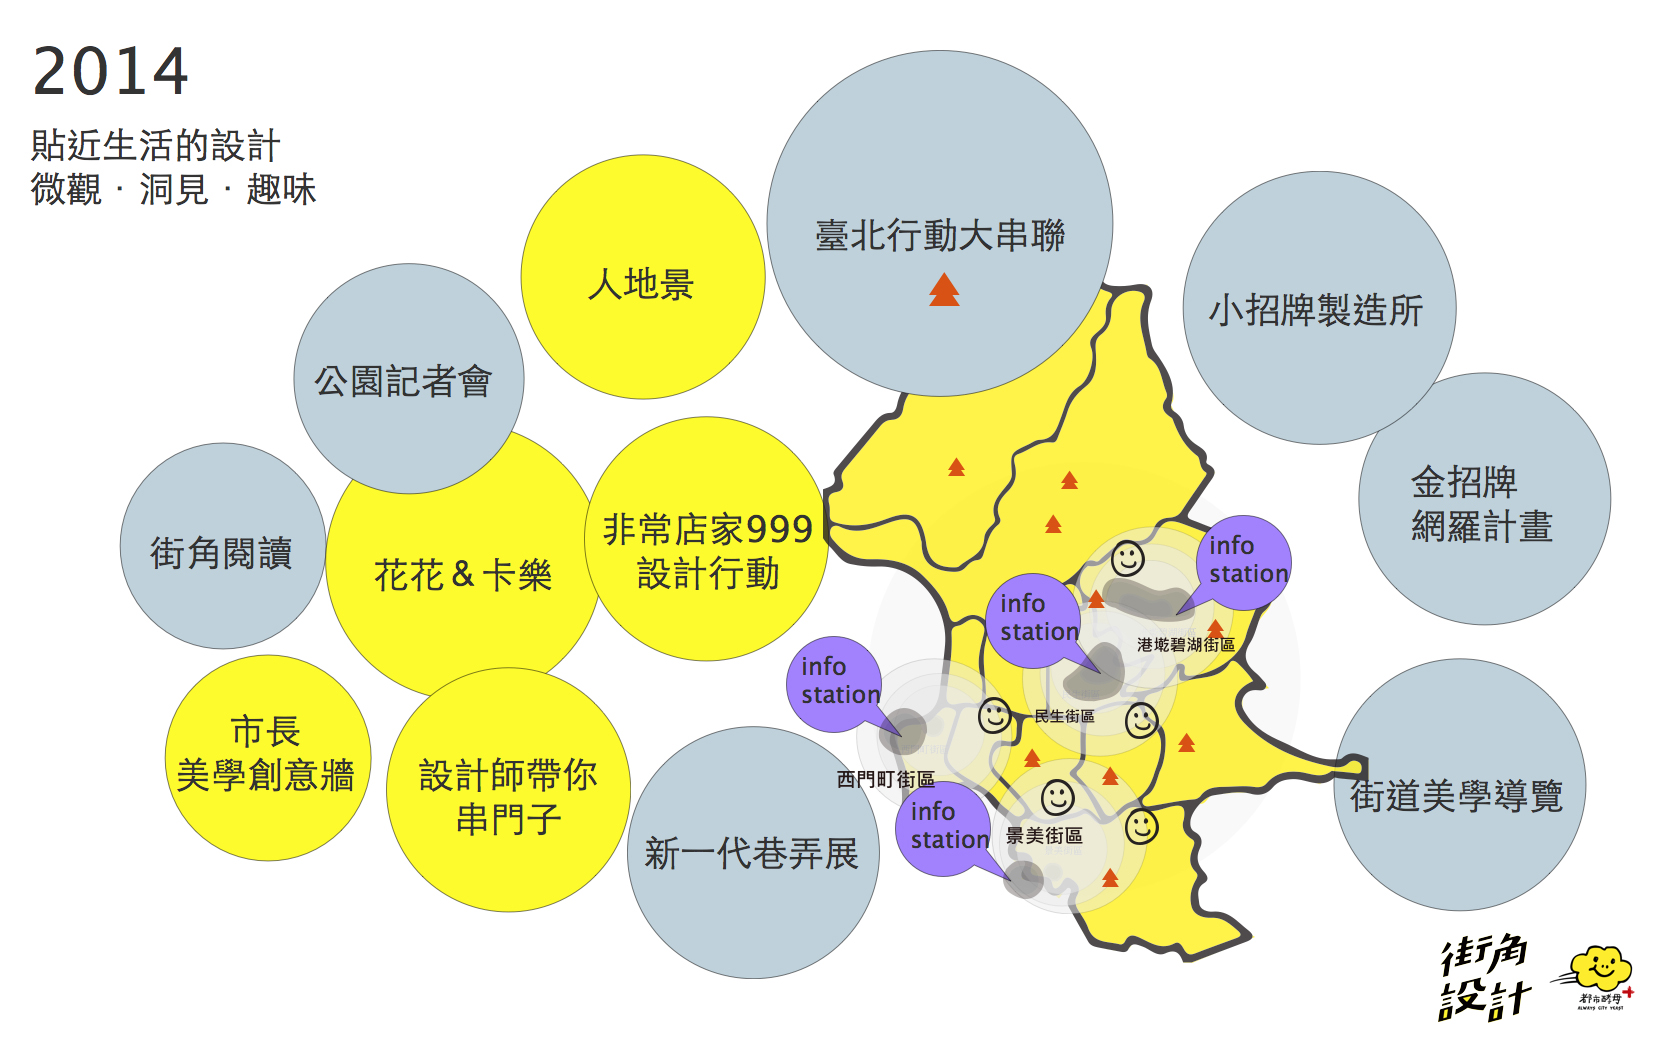 臺北街角遇見設計, 臺北, 世界設計之都, Taipei, Meet Taipei Design, Design Action, AGUA Design, City Yeast, 都市酵母, 水越設計